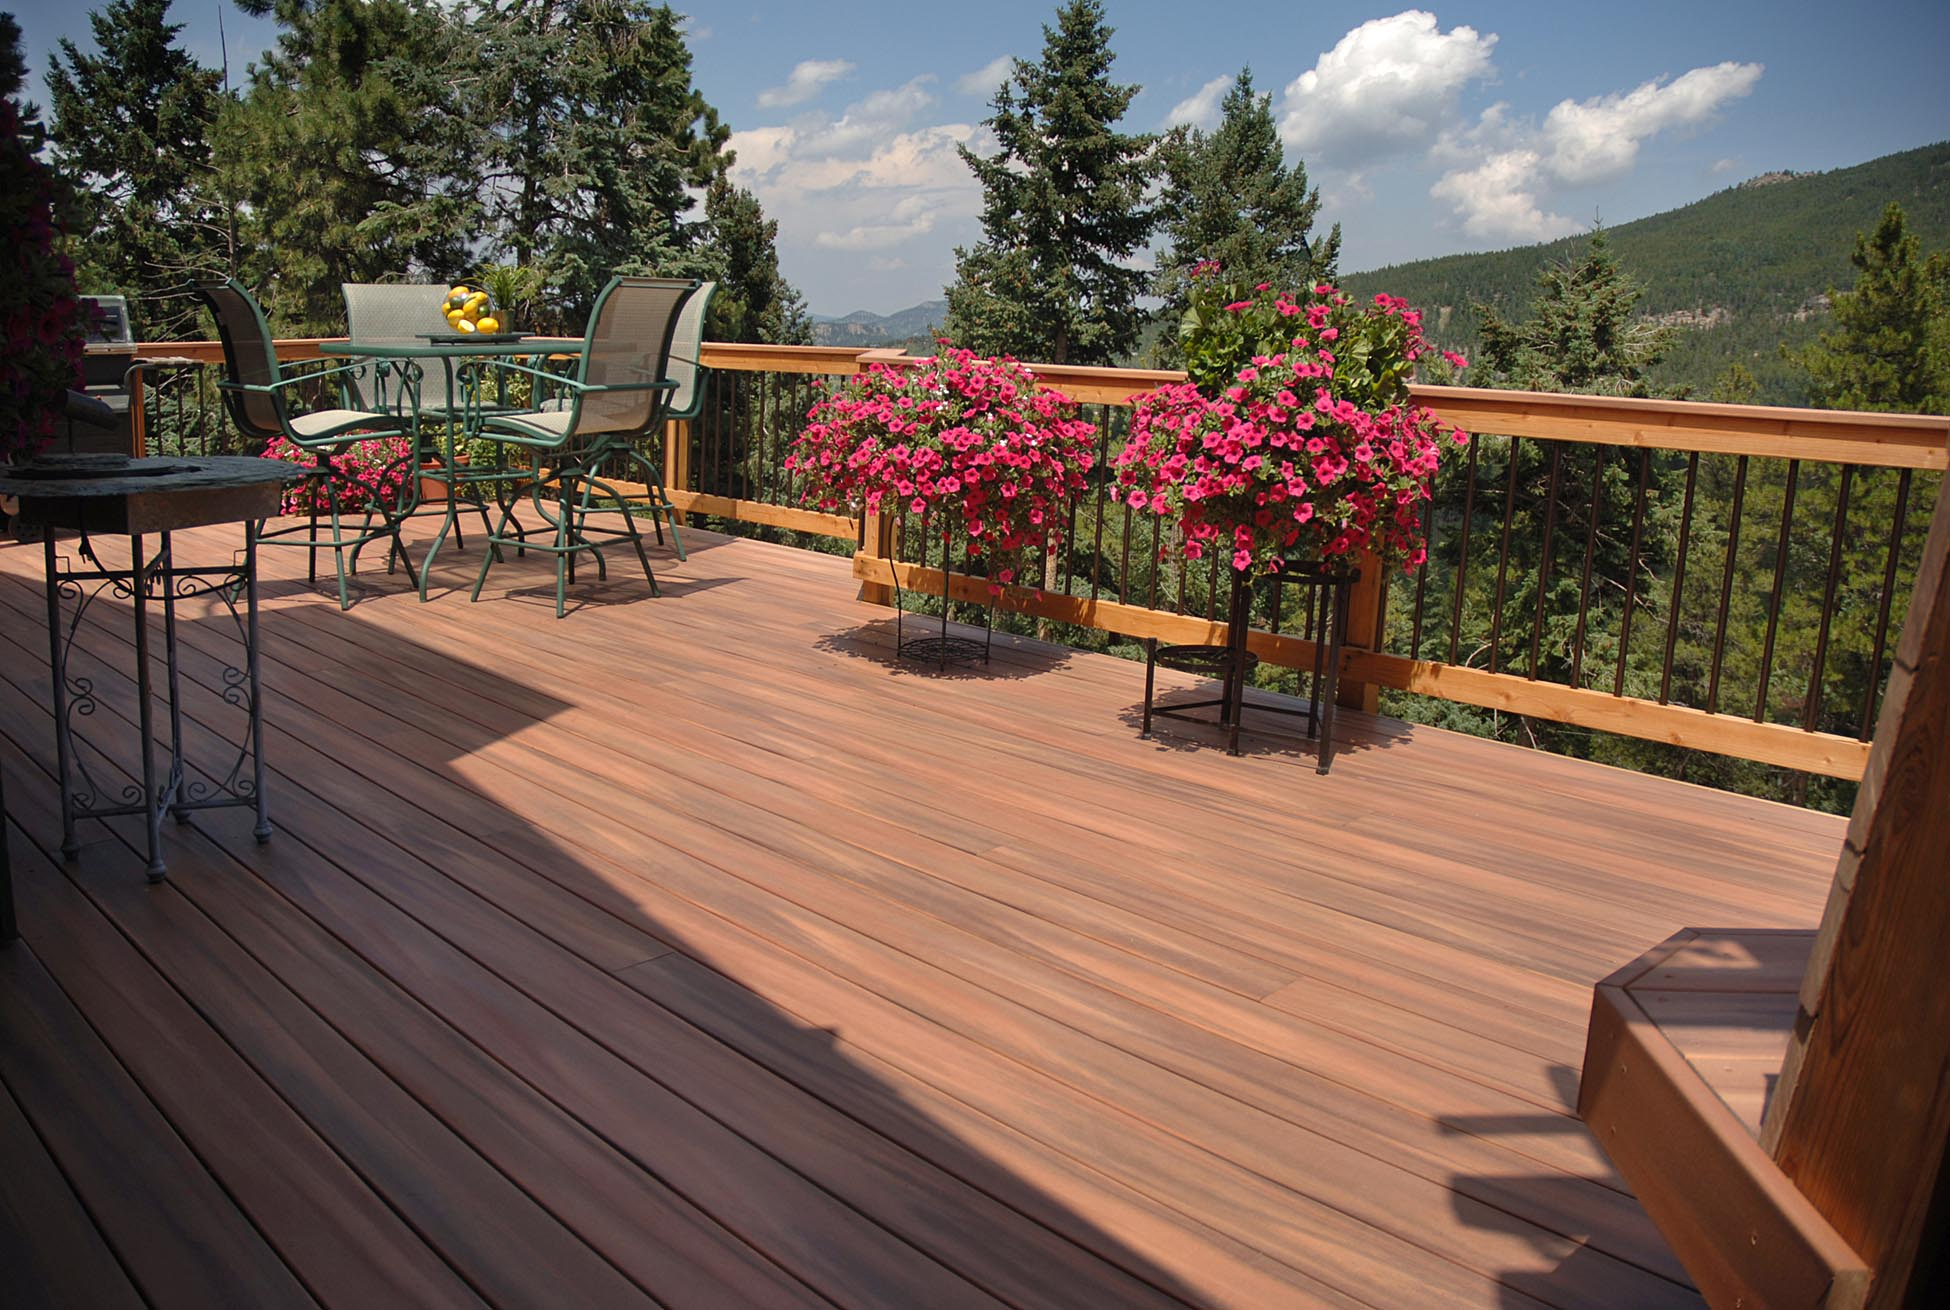 10 facts about composite decking